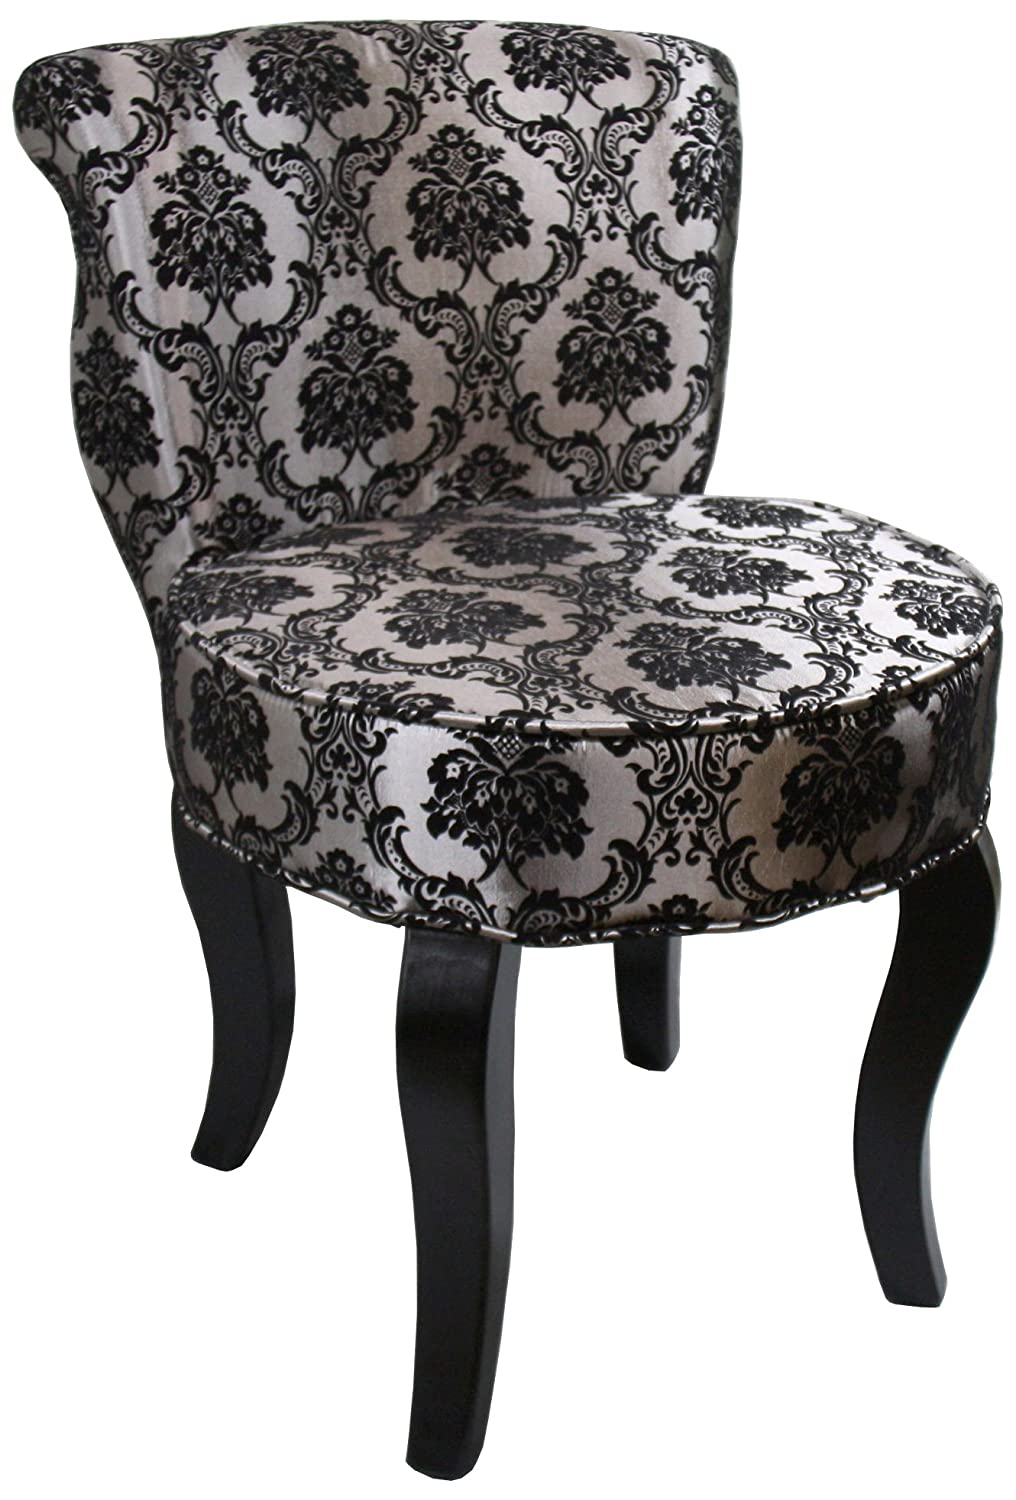 Ore International HB4539 31 Inch French Damask Accent Chair, Armless,  Black/Grey